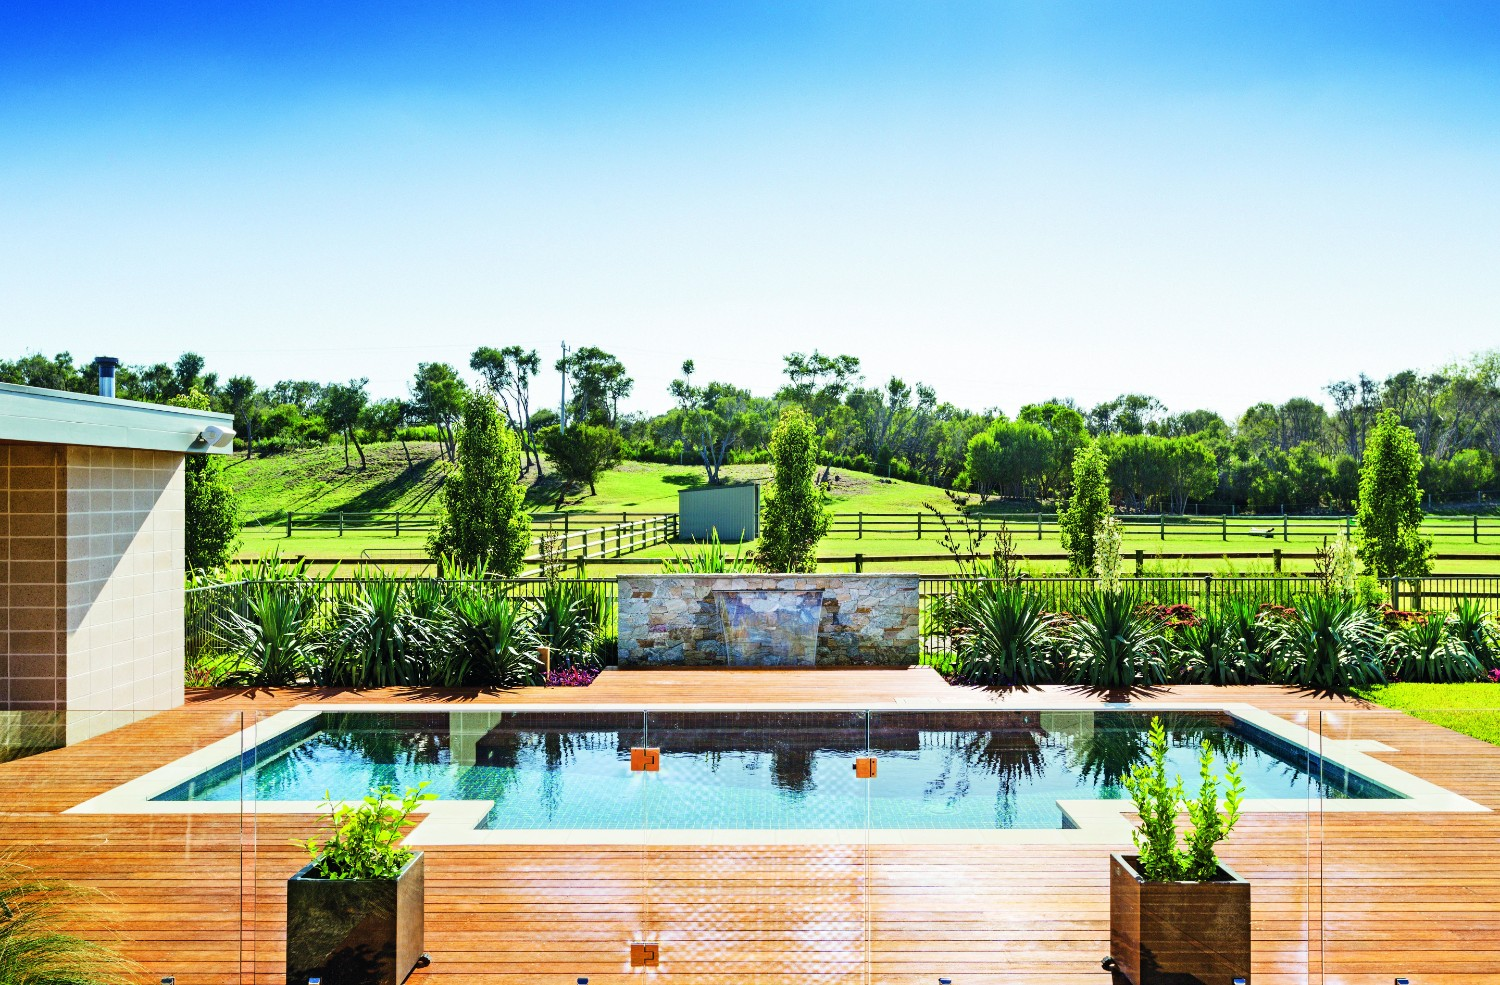 6 great pool landscaping ideas to revitalise your outdoors